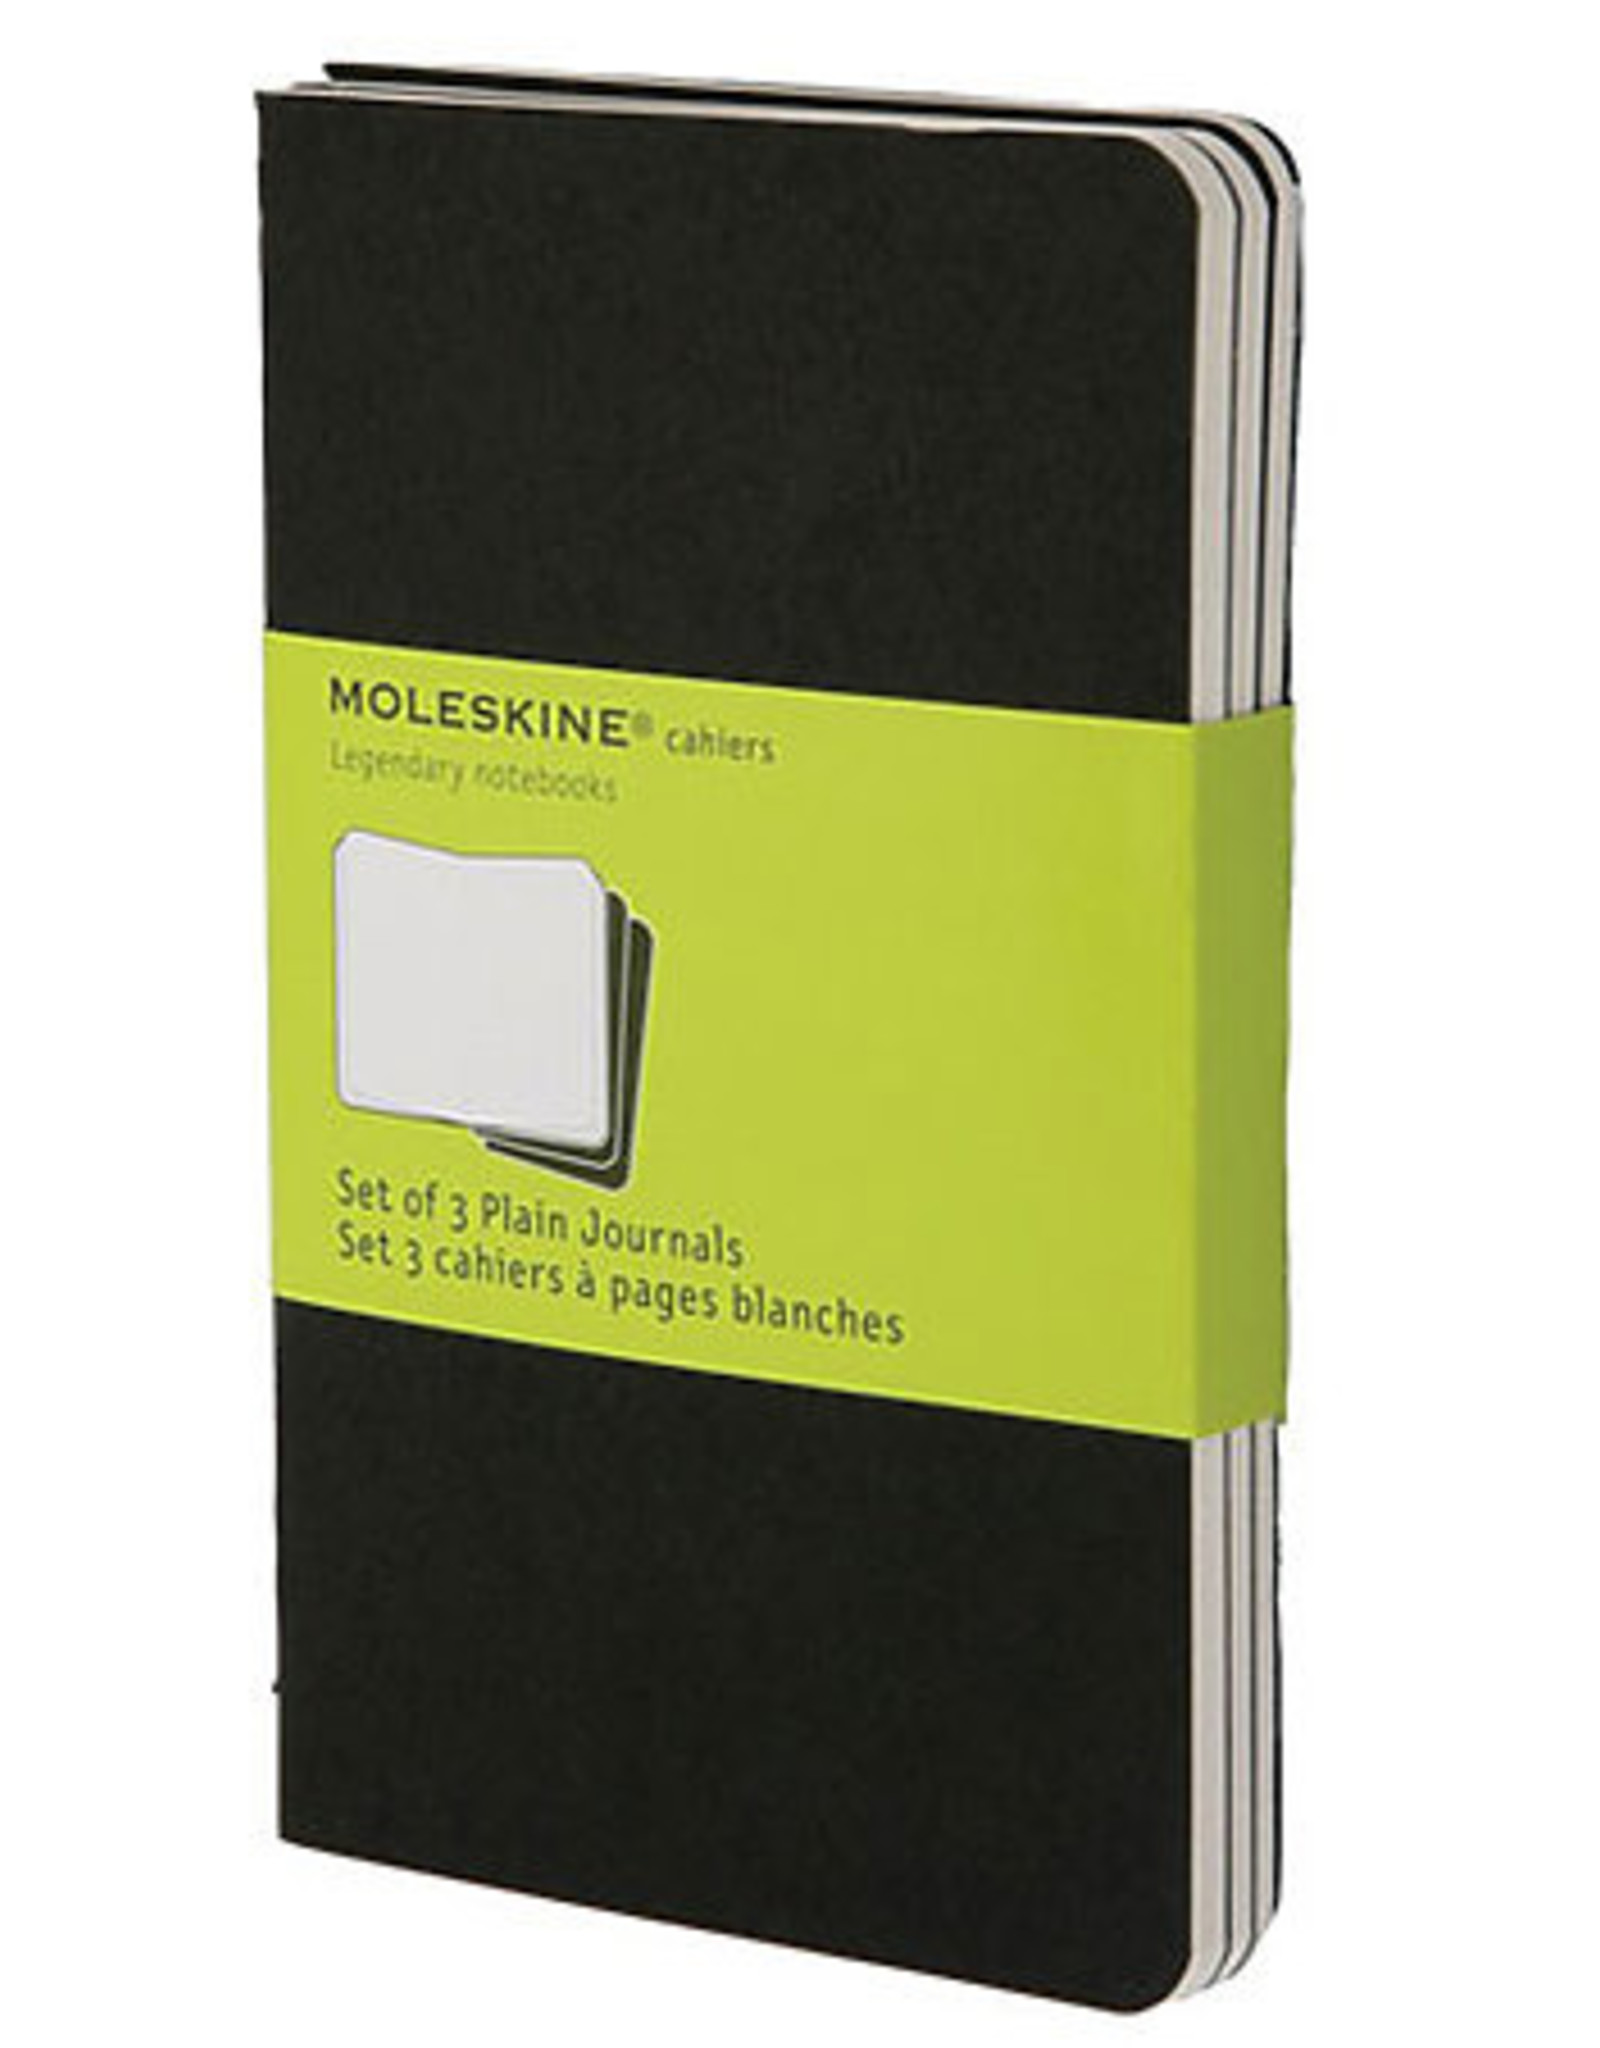 Moleskine Cahiers Set of 3 Black